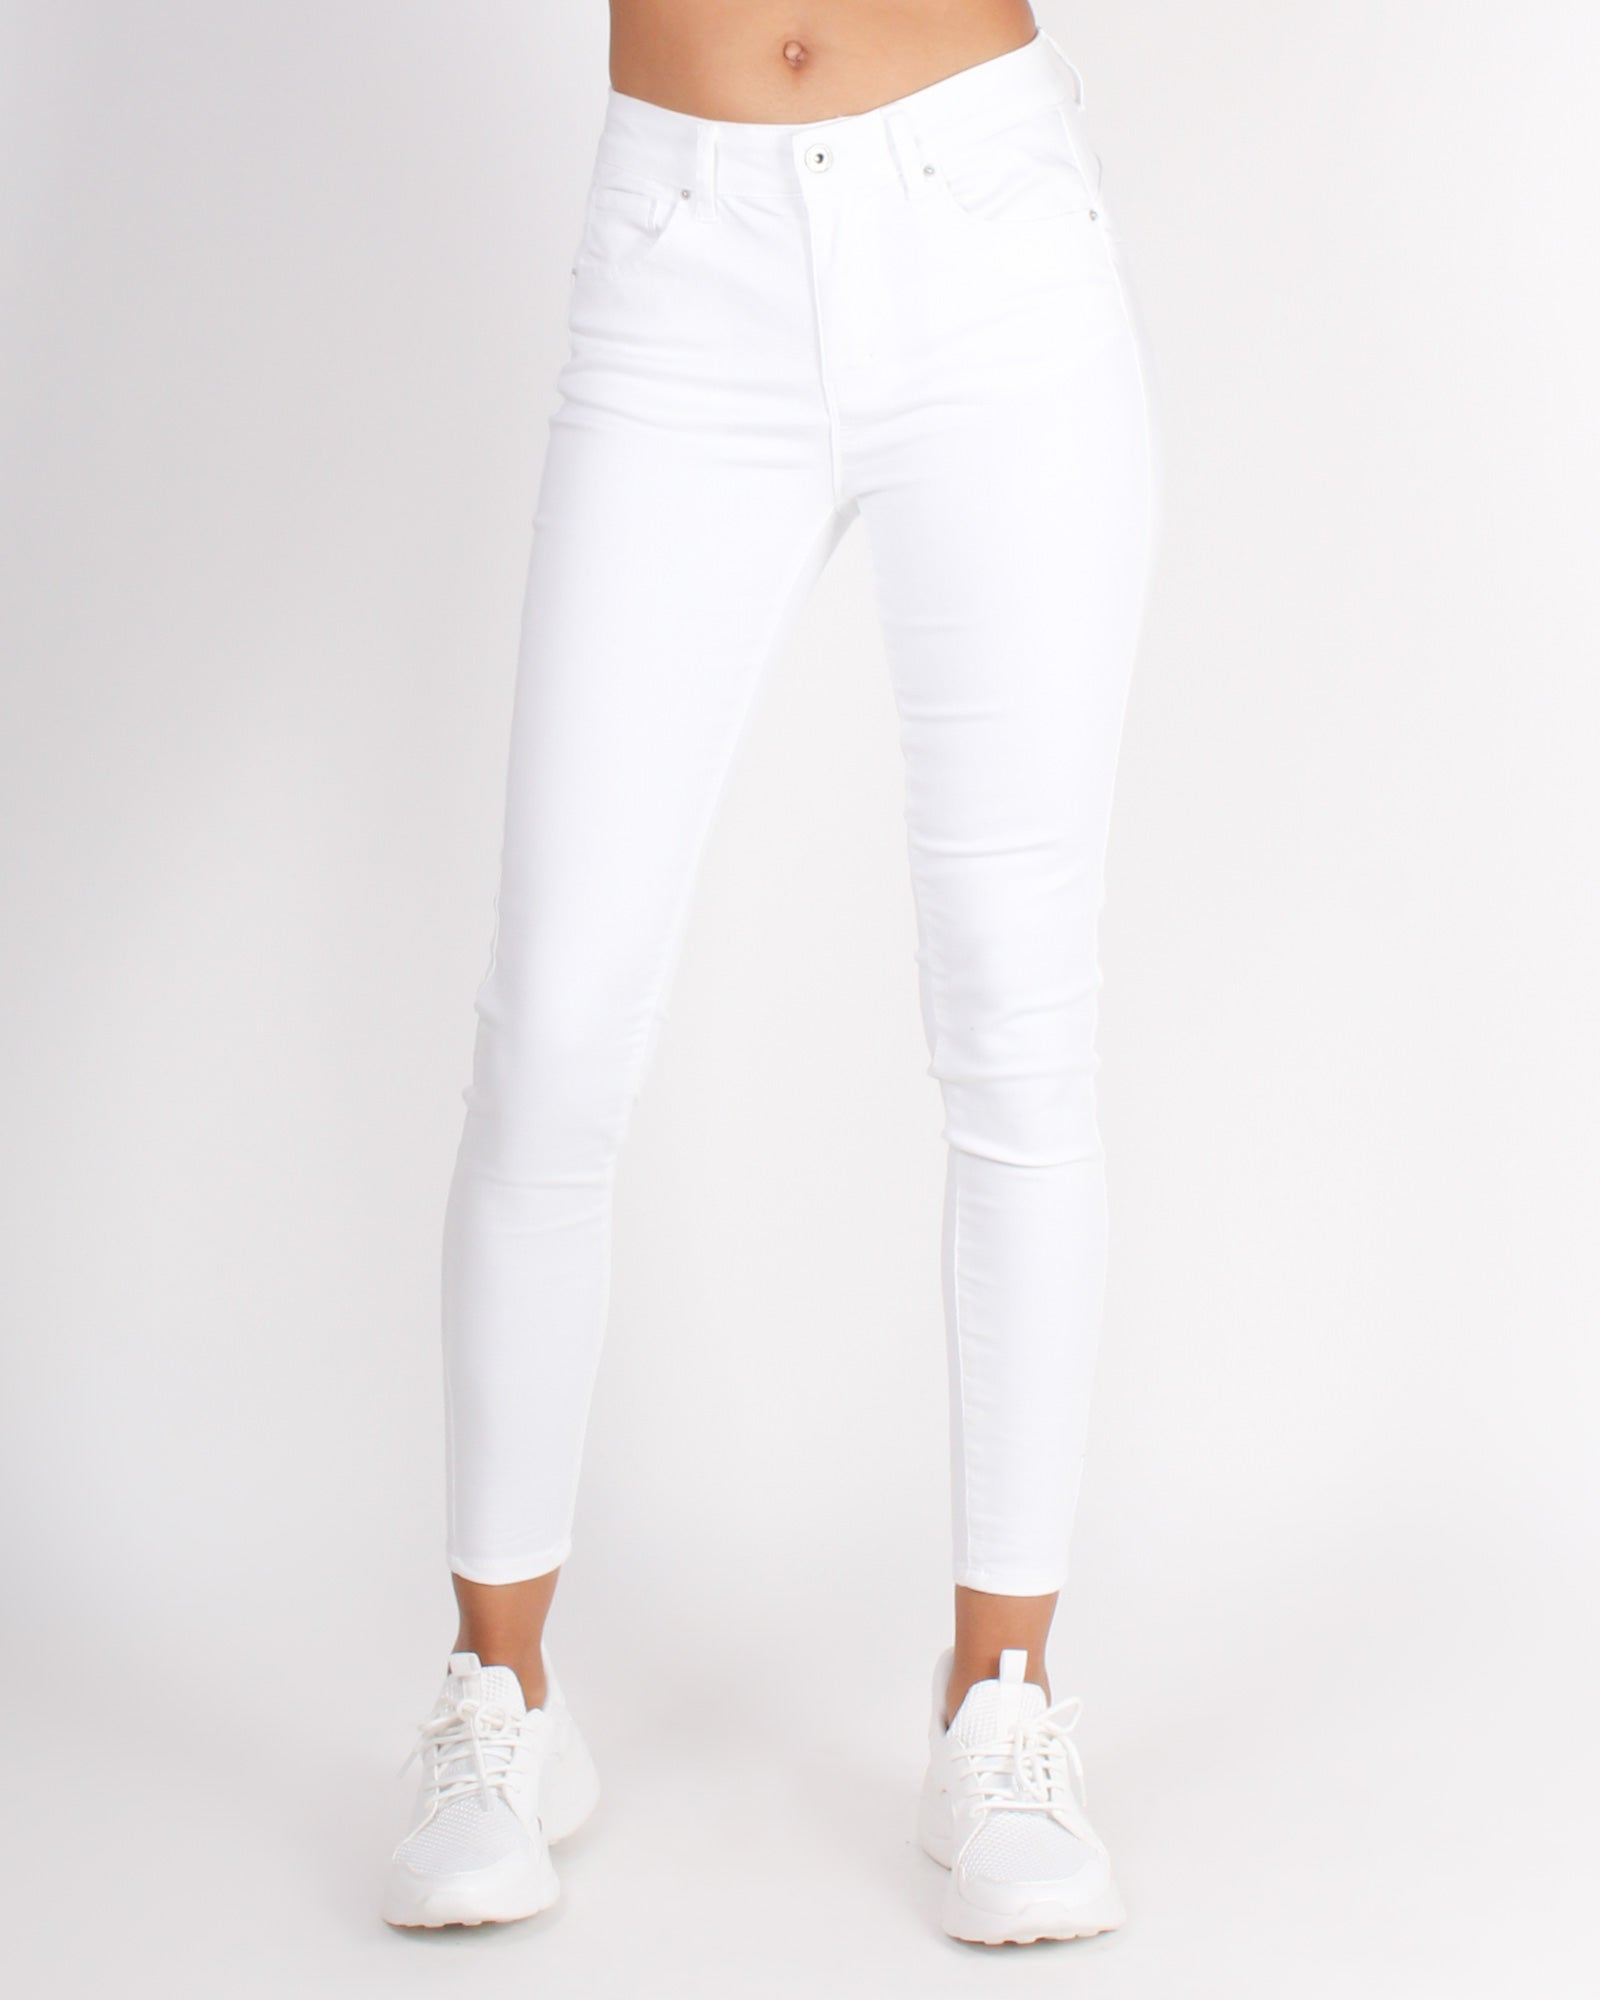 Fashion Q Shop Q Drive Me Crazy Skinny Jeans (White) 90210